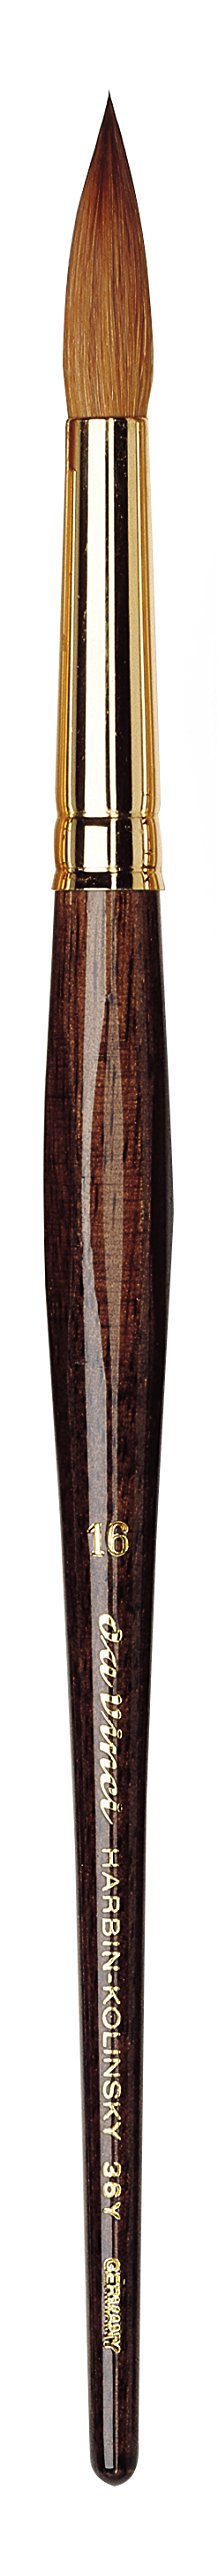 da Vinci Watercolor Series 36Y Paint Brush, Round Harbin Kolinsky Red Sable with Anthracite Hexagonal Handle, Size 16